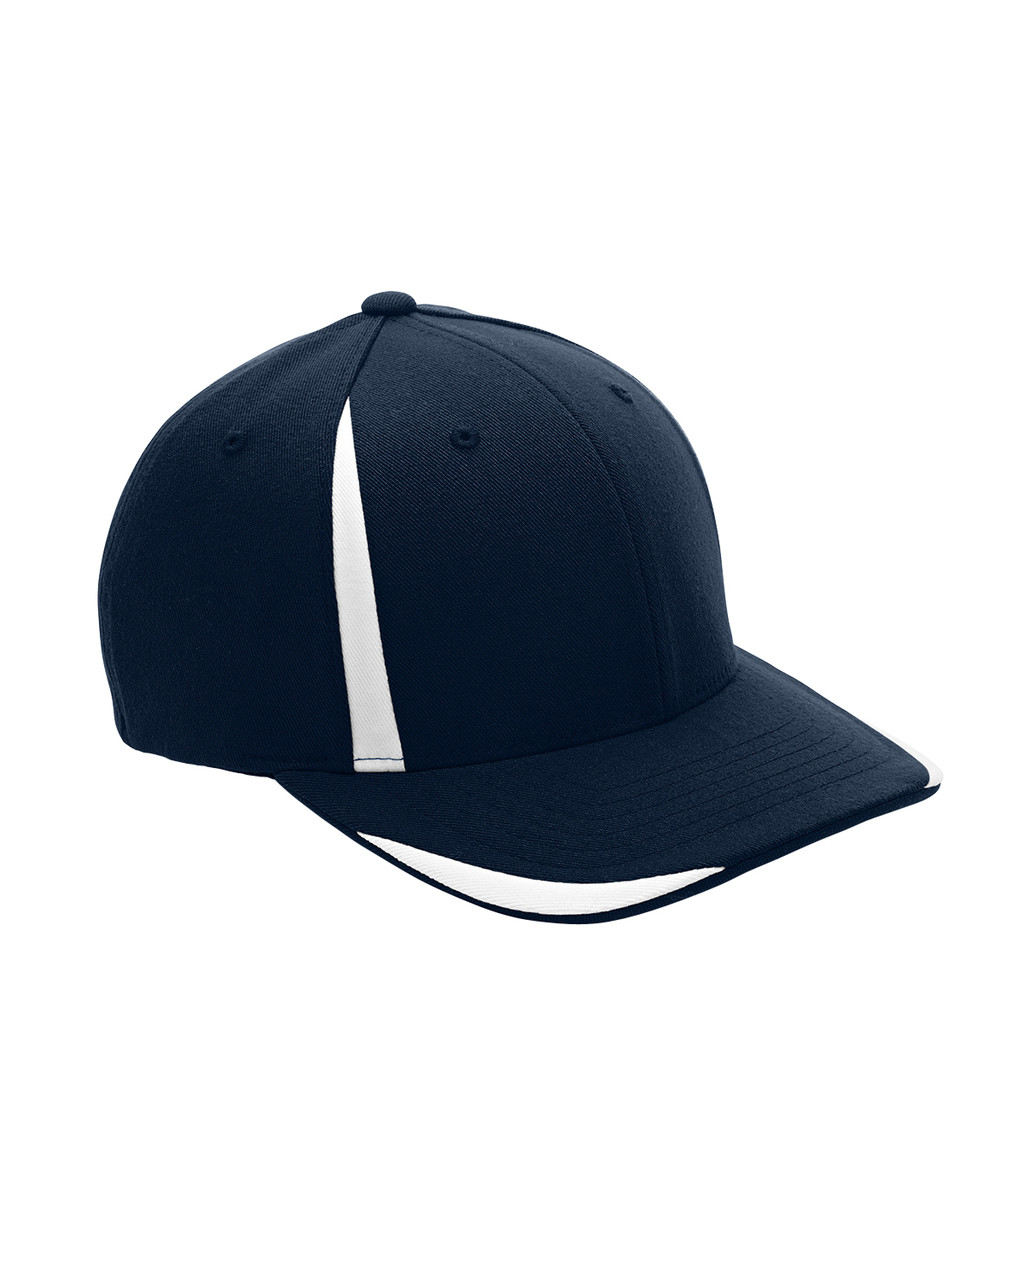 Dark Navy/White - ATB102 Flexfit for Team 365 Pro-Formance Front Sweep Cap